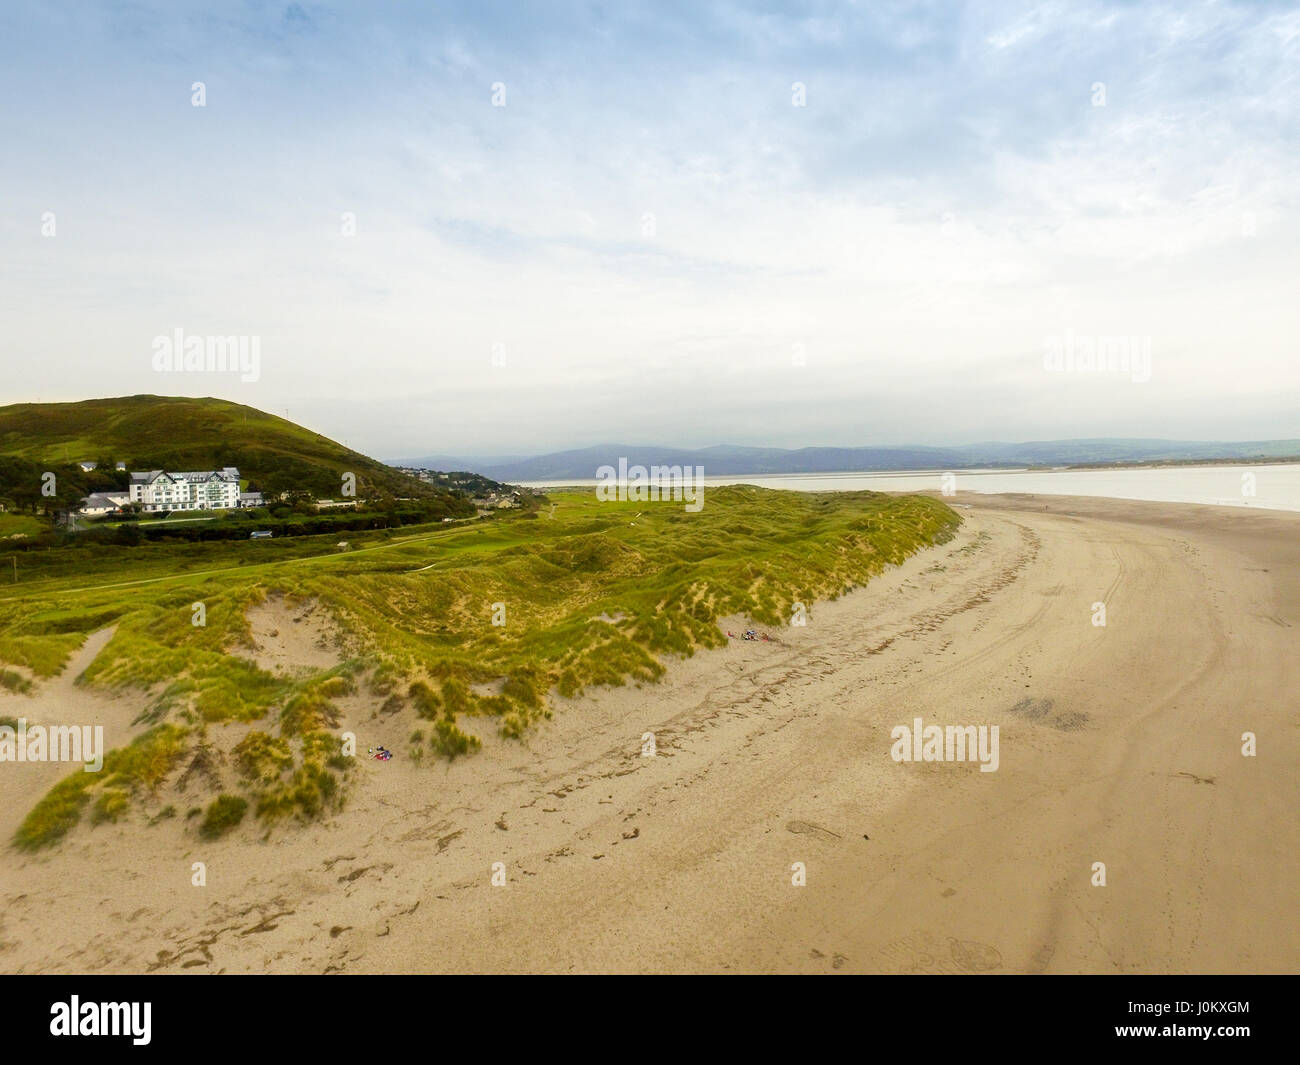 Aerial photograph of Aberdovey beach, sand dunes, Aberdovey Golf Club and Trefeddian Hotel. - Stock Image